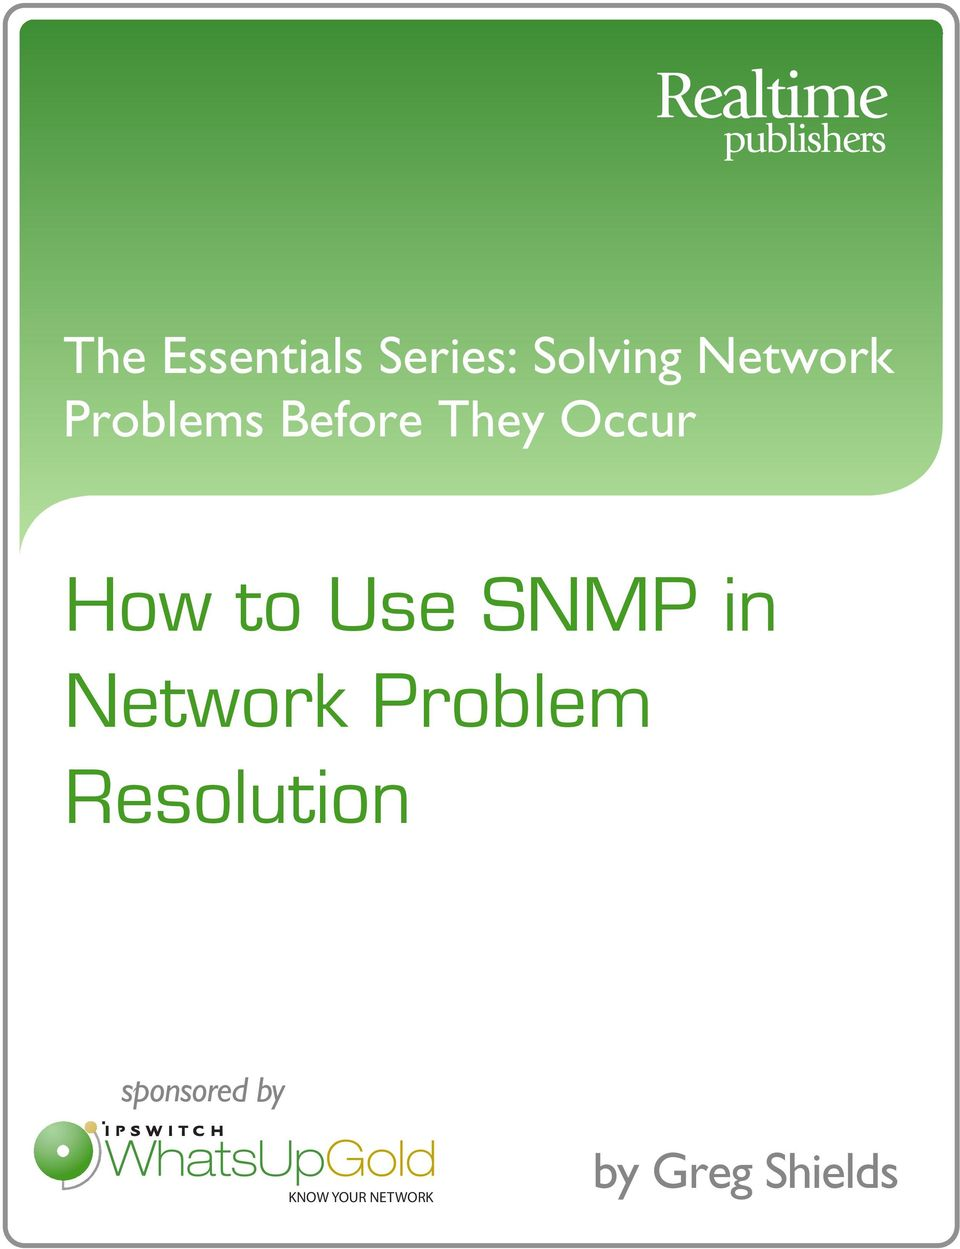 SNMP in Network Problem Resolution